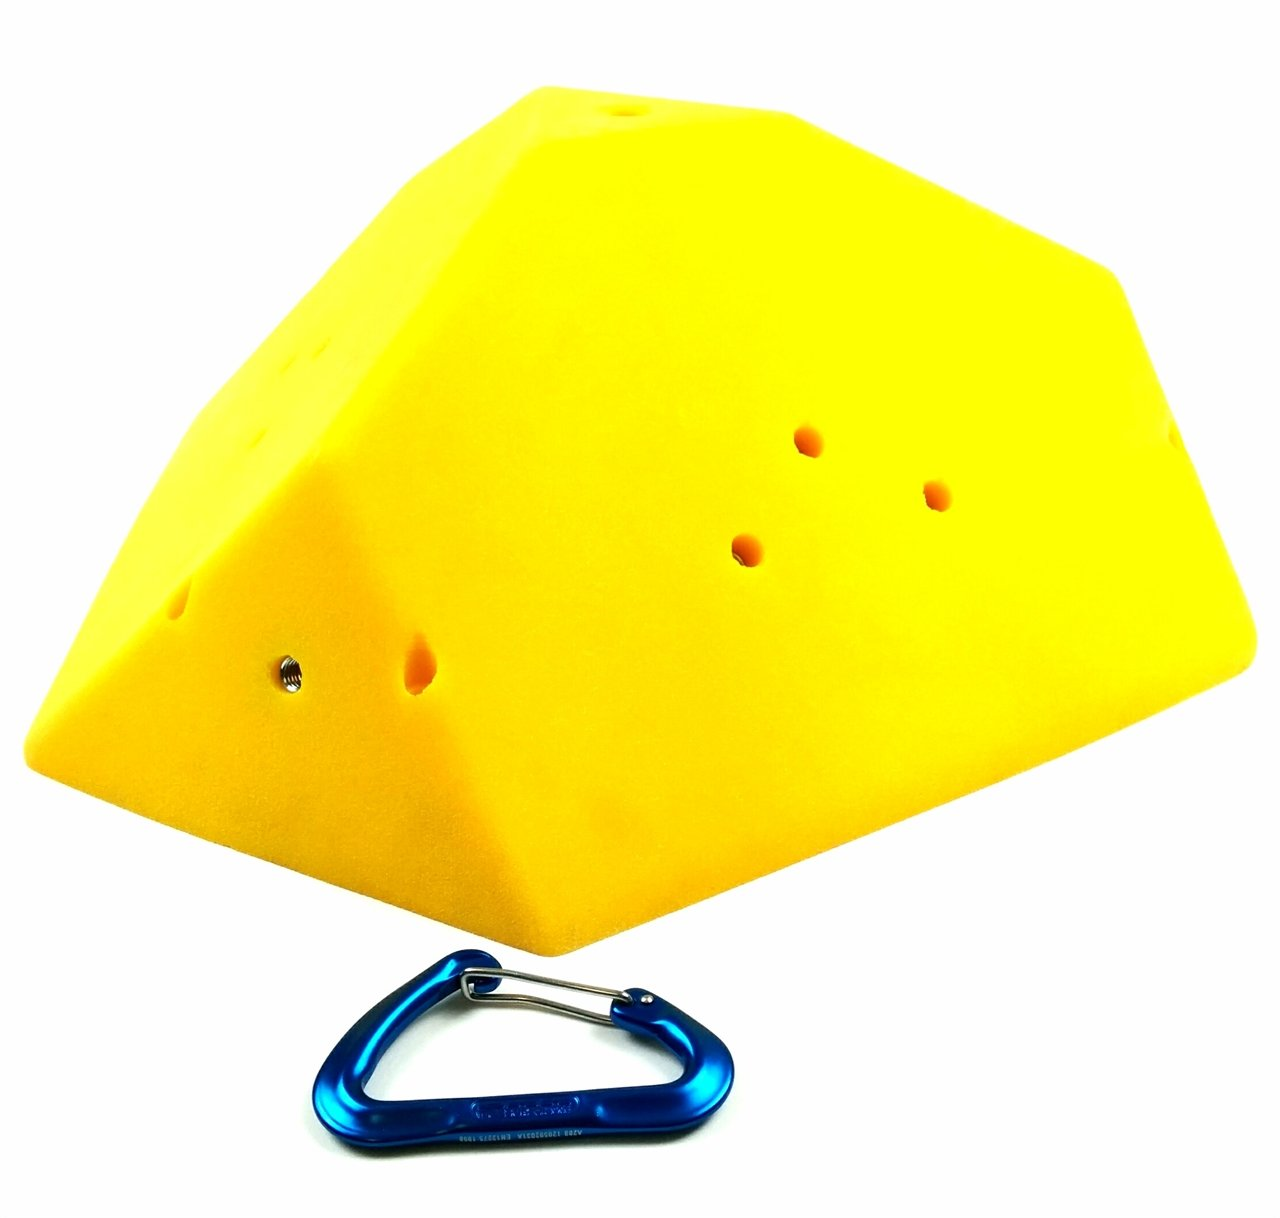 Volumes #9 (High Profile Large Surface Triangle) | Climbing Holds | Blue